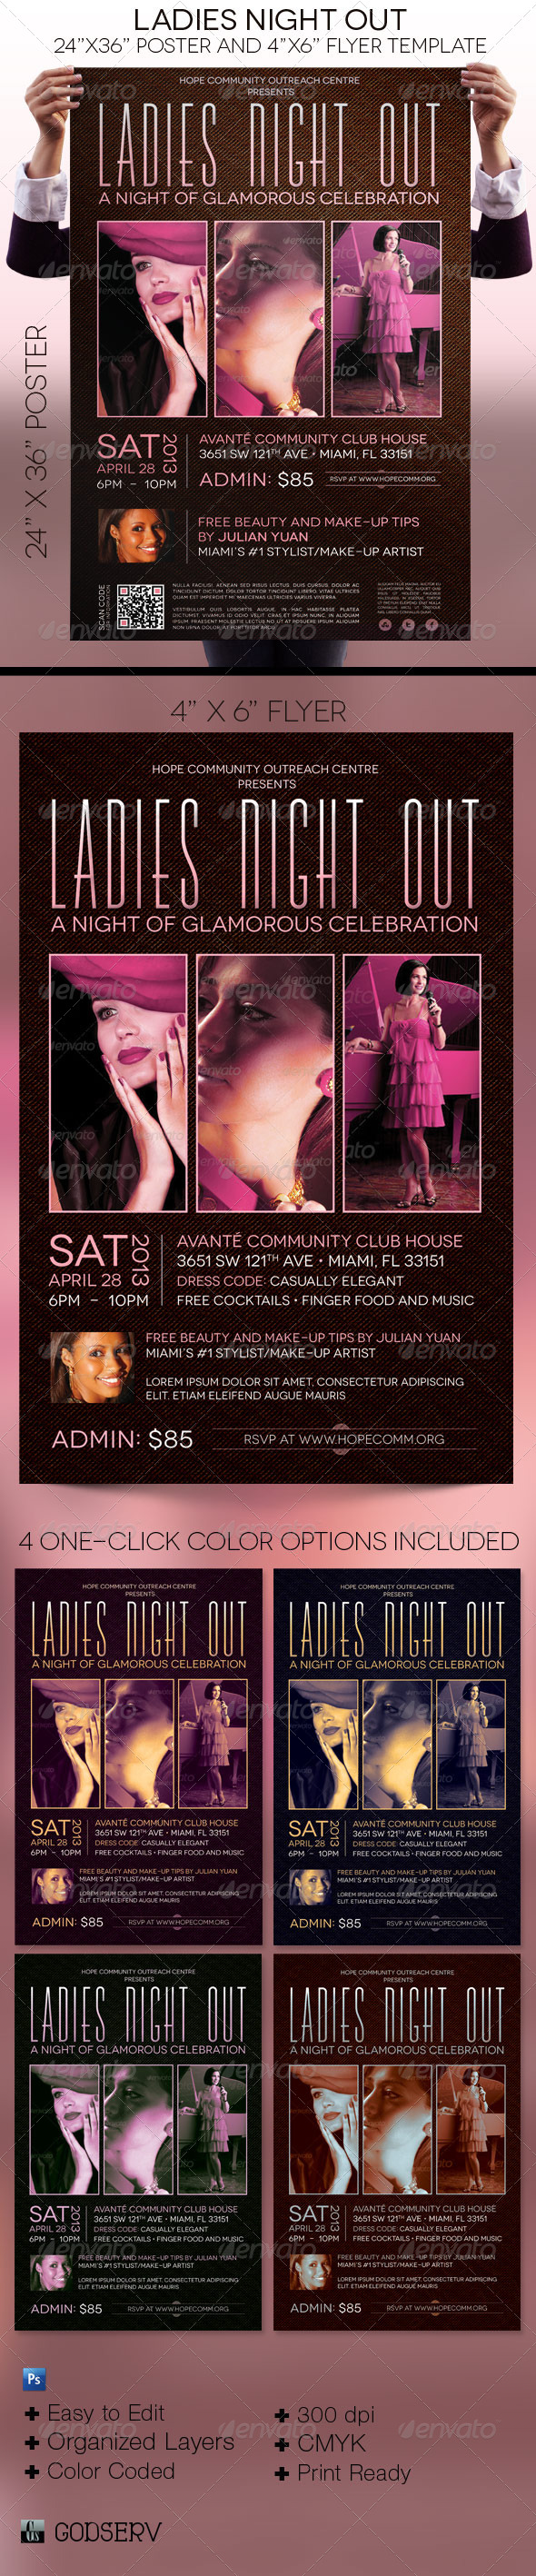 Ladies Night Out Poster Flyer Template - Events Flyers